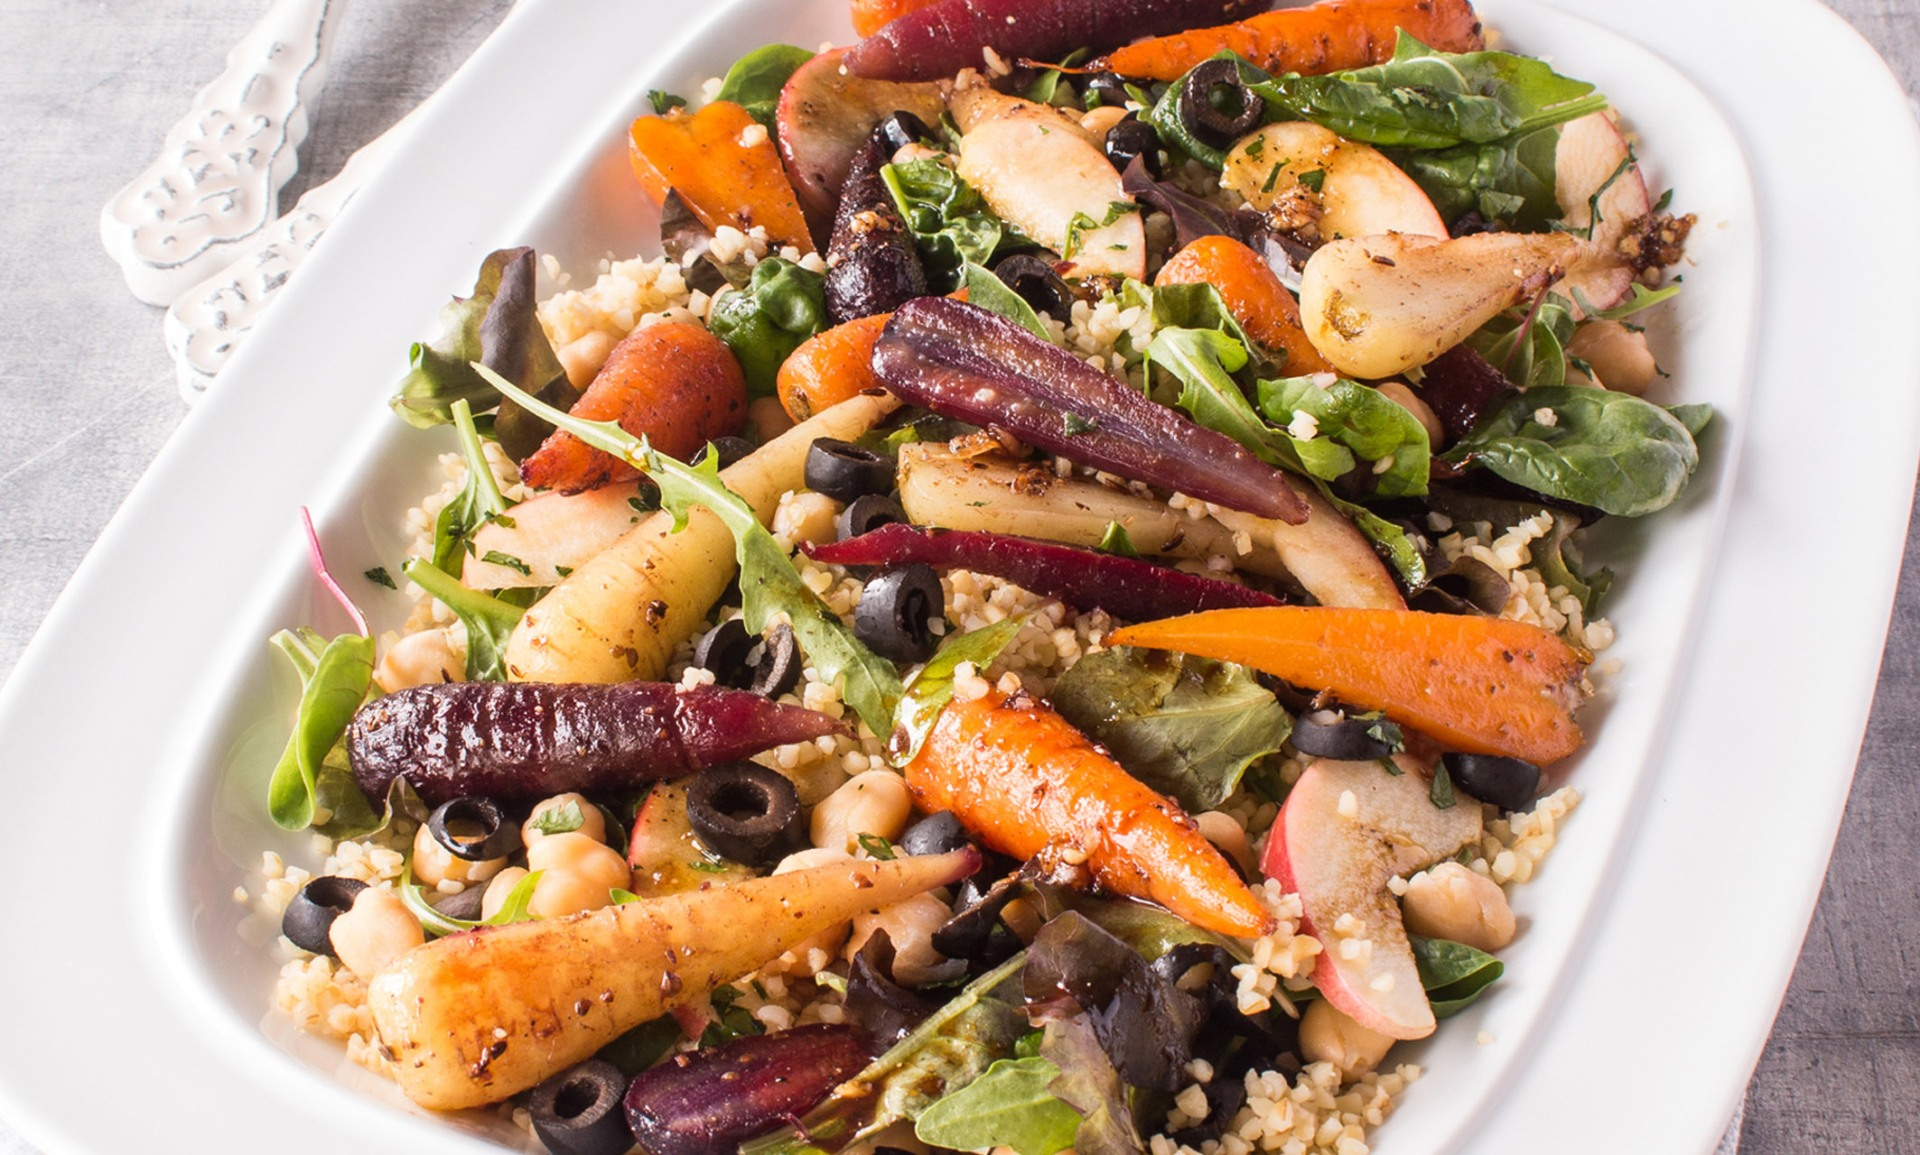 Chantenay Carrot, Bulgar Wheat and Chickpea Spicy Salad